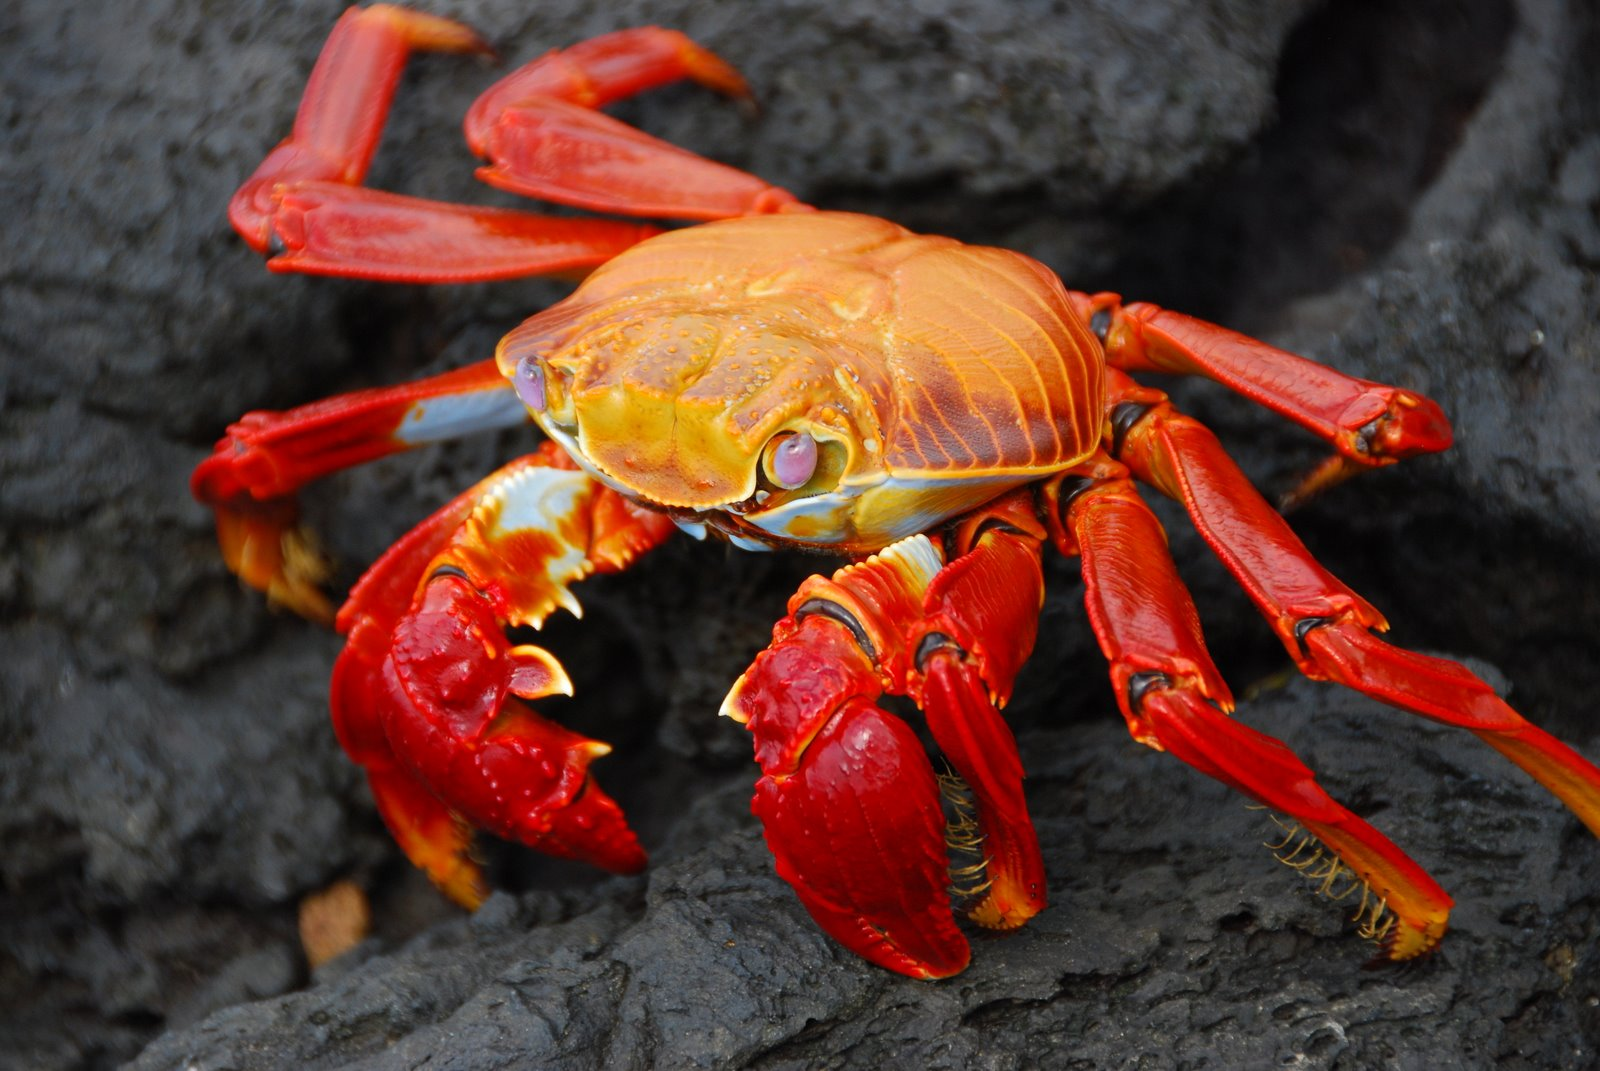 4k Crabs Wallpapers High Quality Download Free HD Wallpapers Download Free Images Wallpaper [1000image.com]